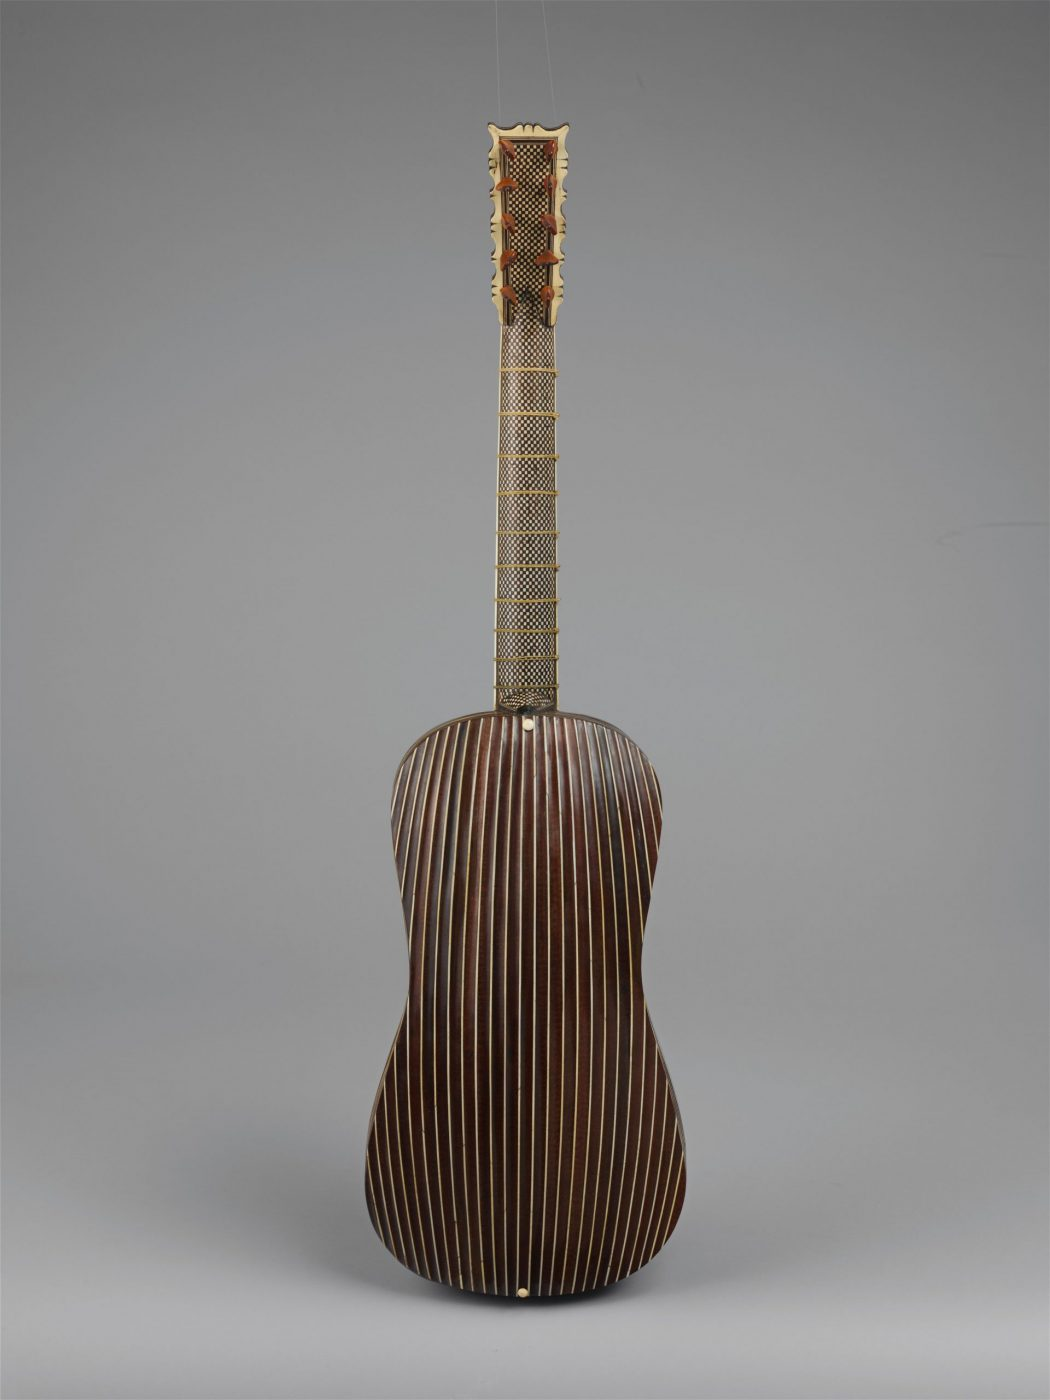 Back of Baroque guitar with many ribs and geometric pattern on neck